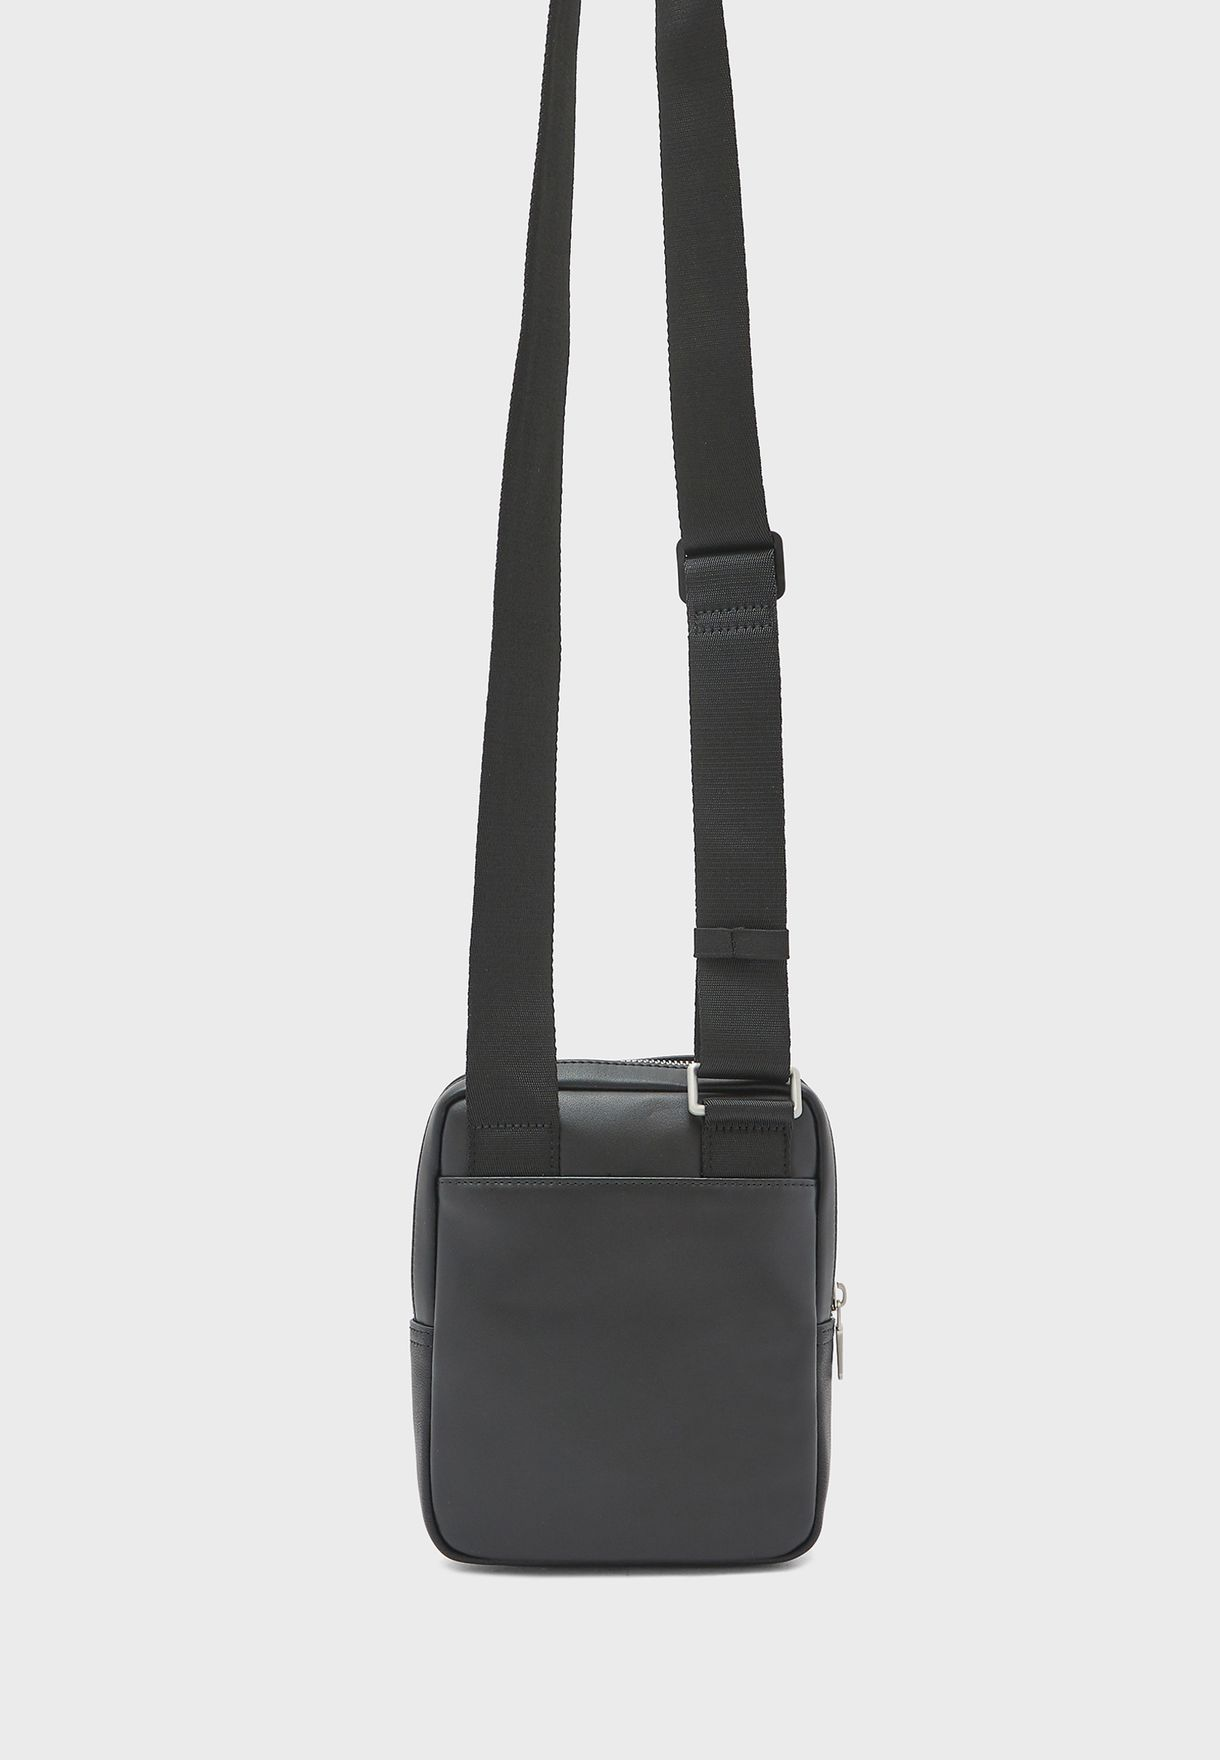 Metropolitan Messenger Bag